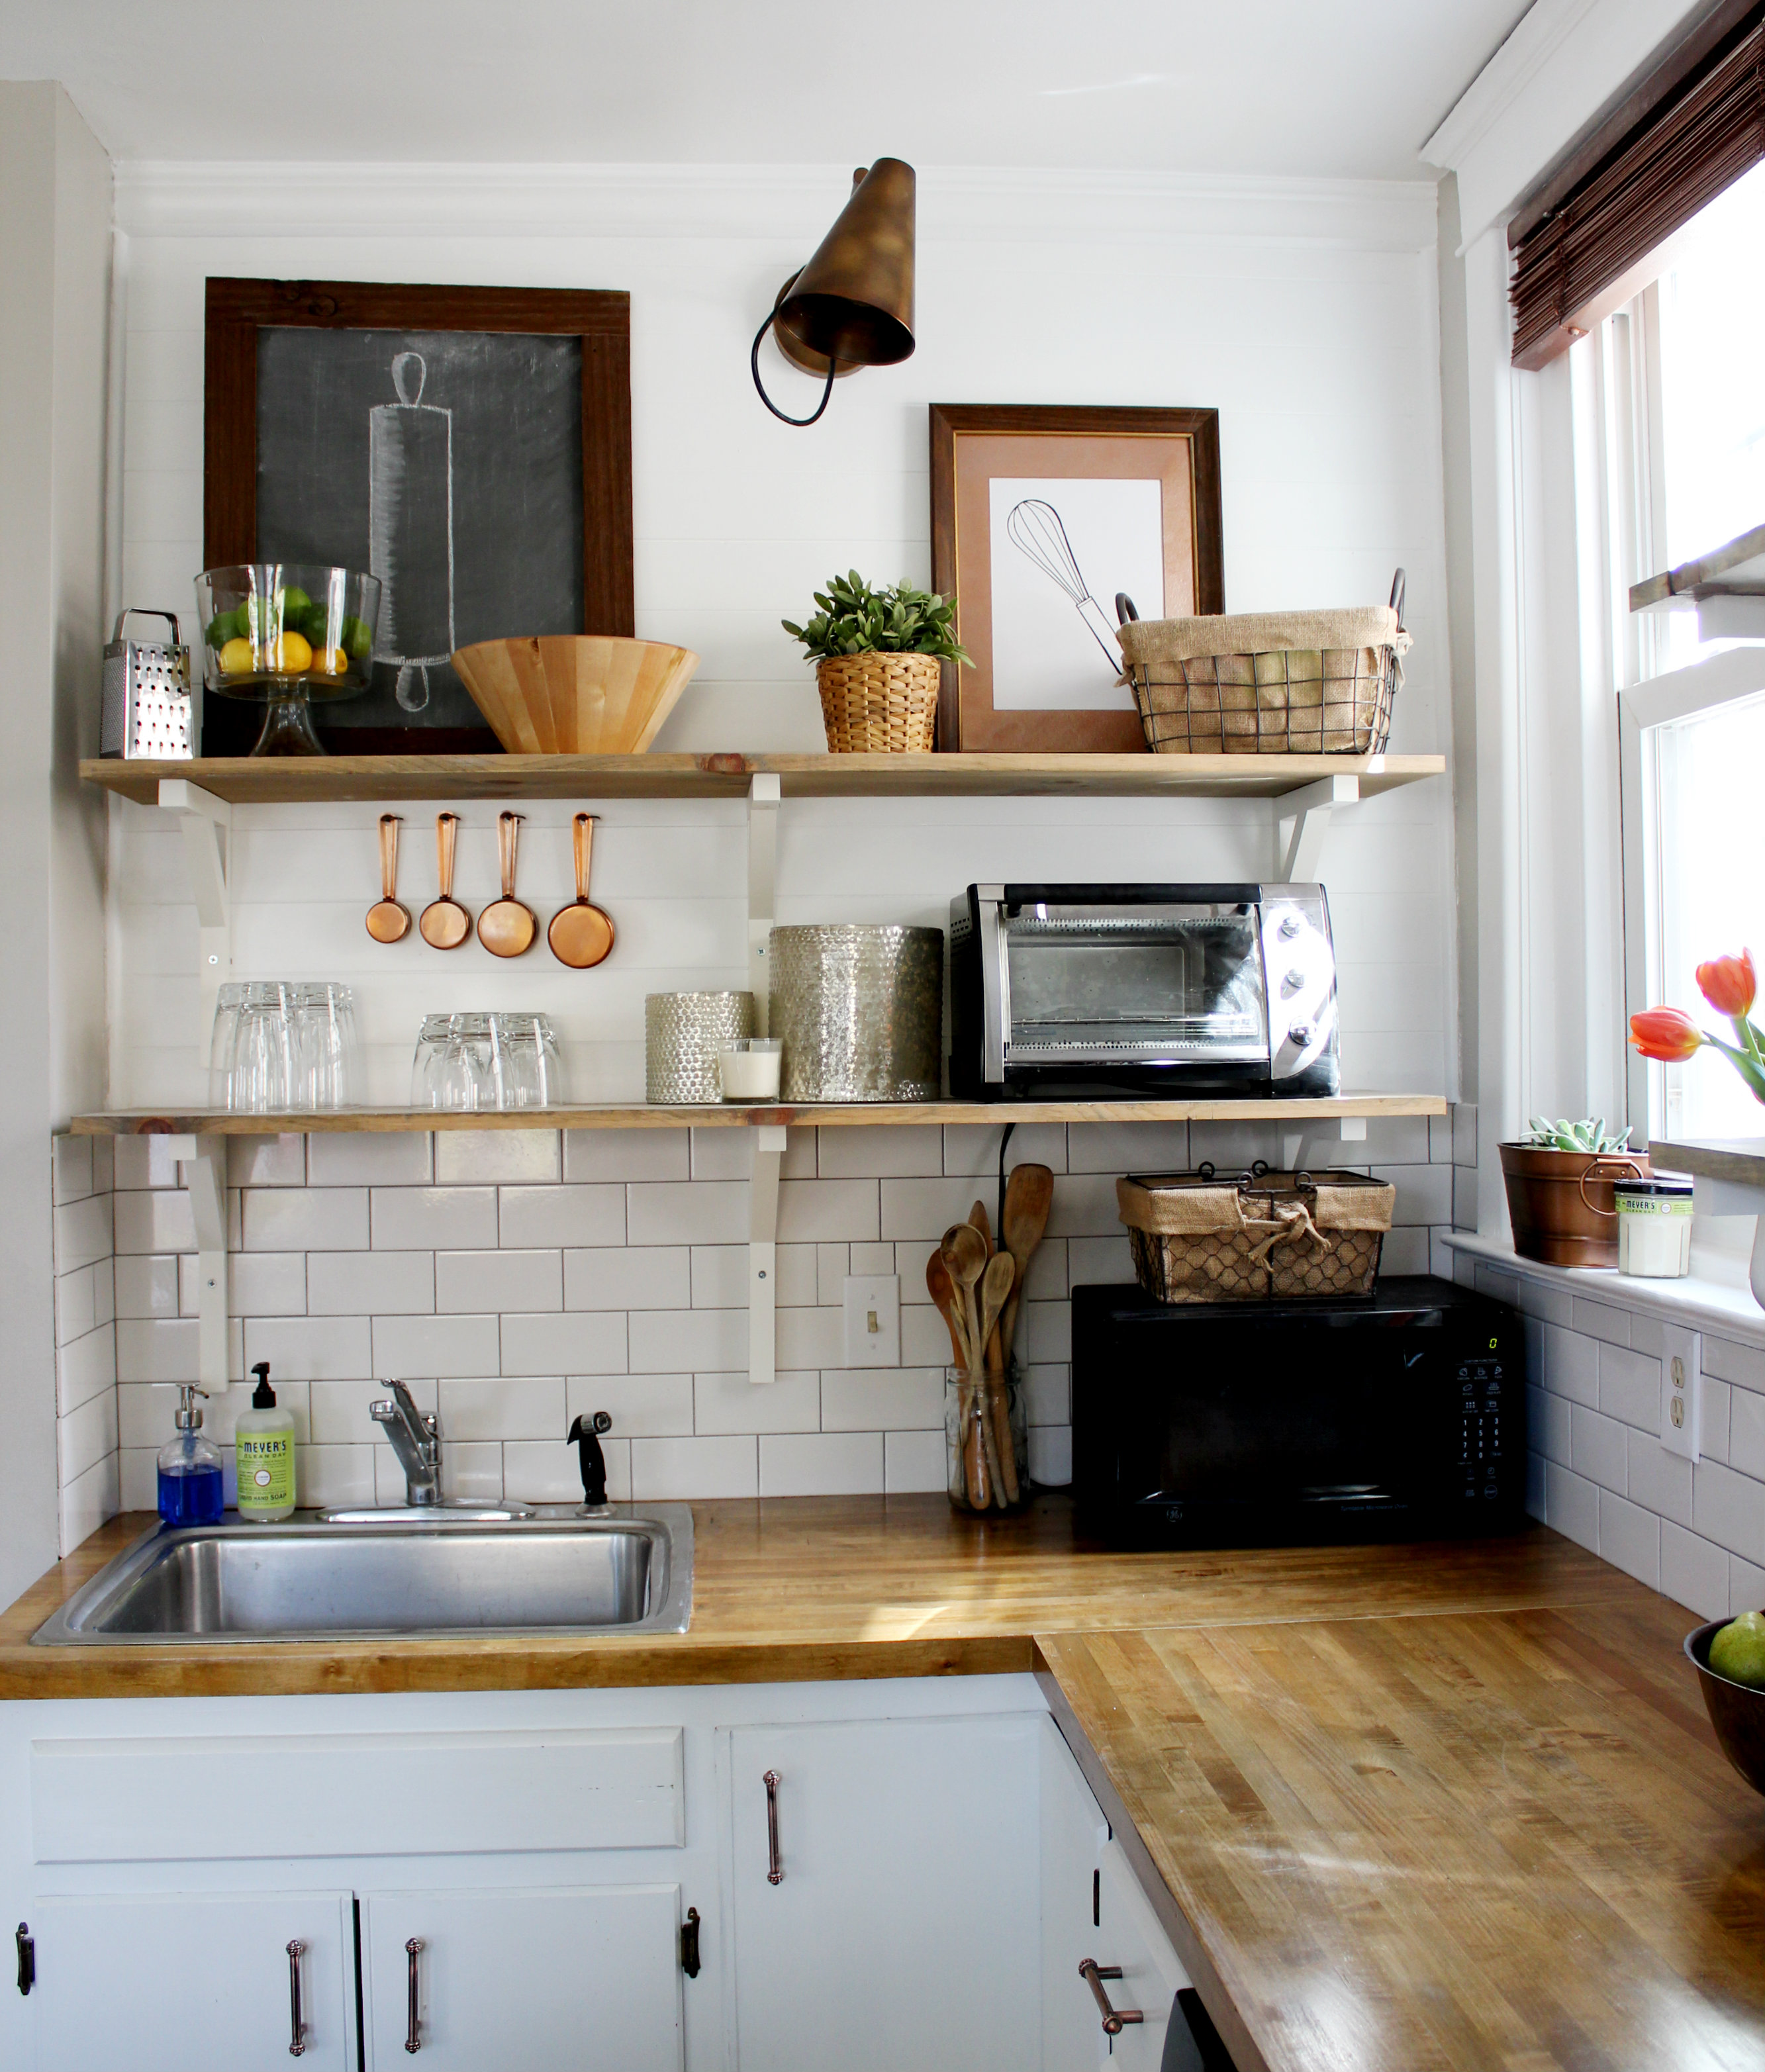 Best Practices for Cleaning Up Before Houseguests